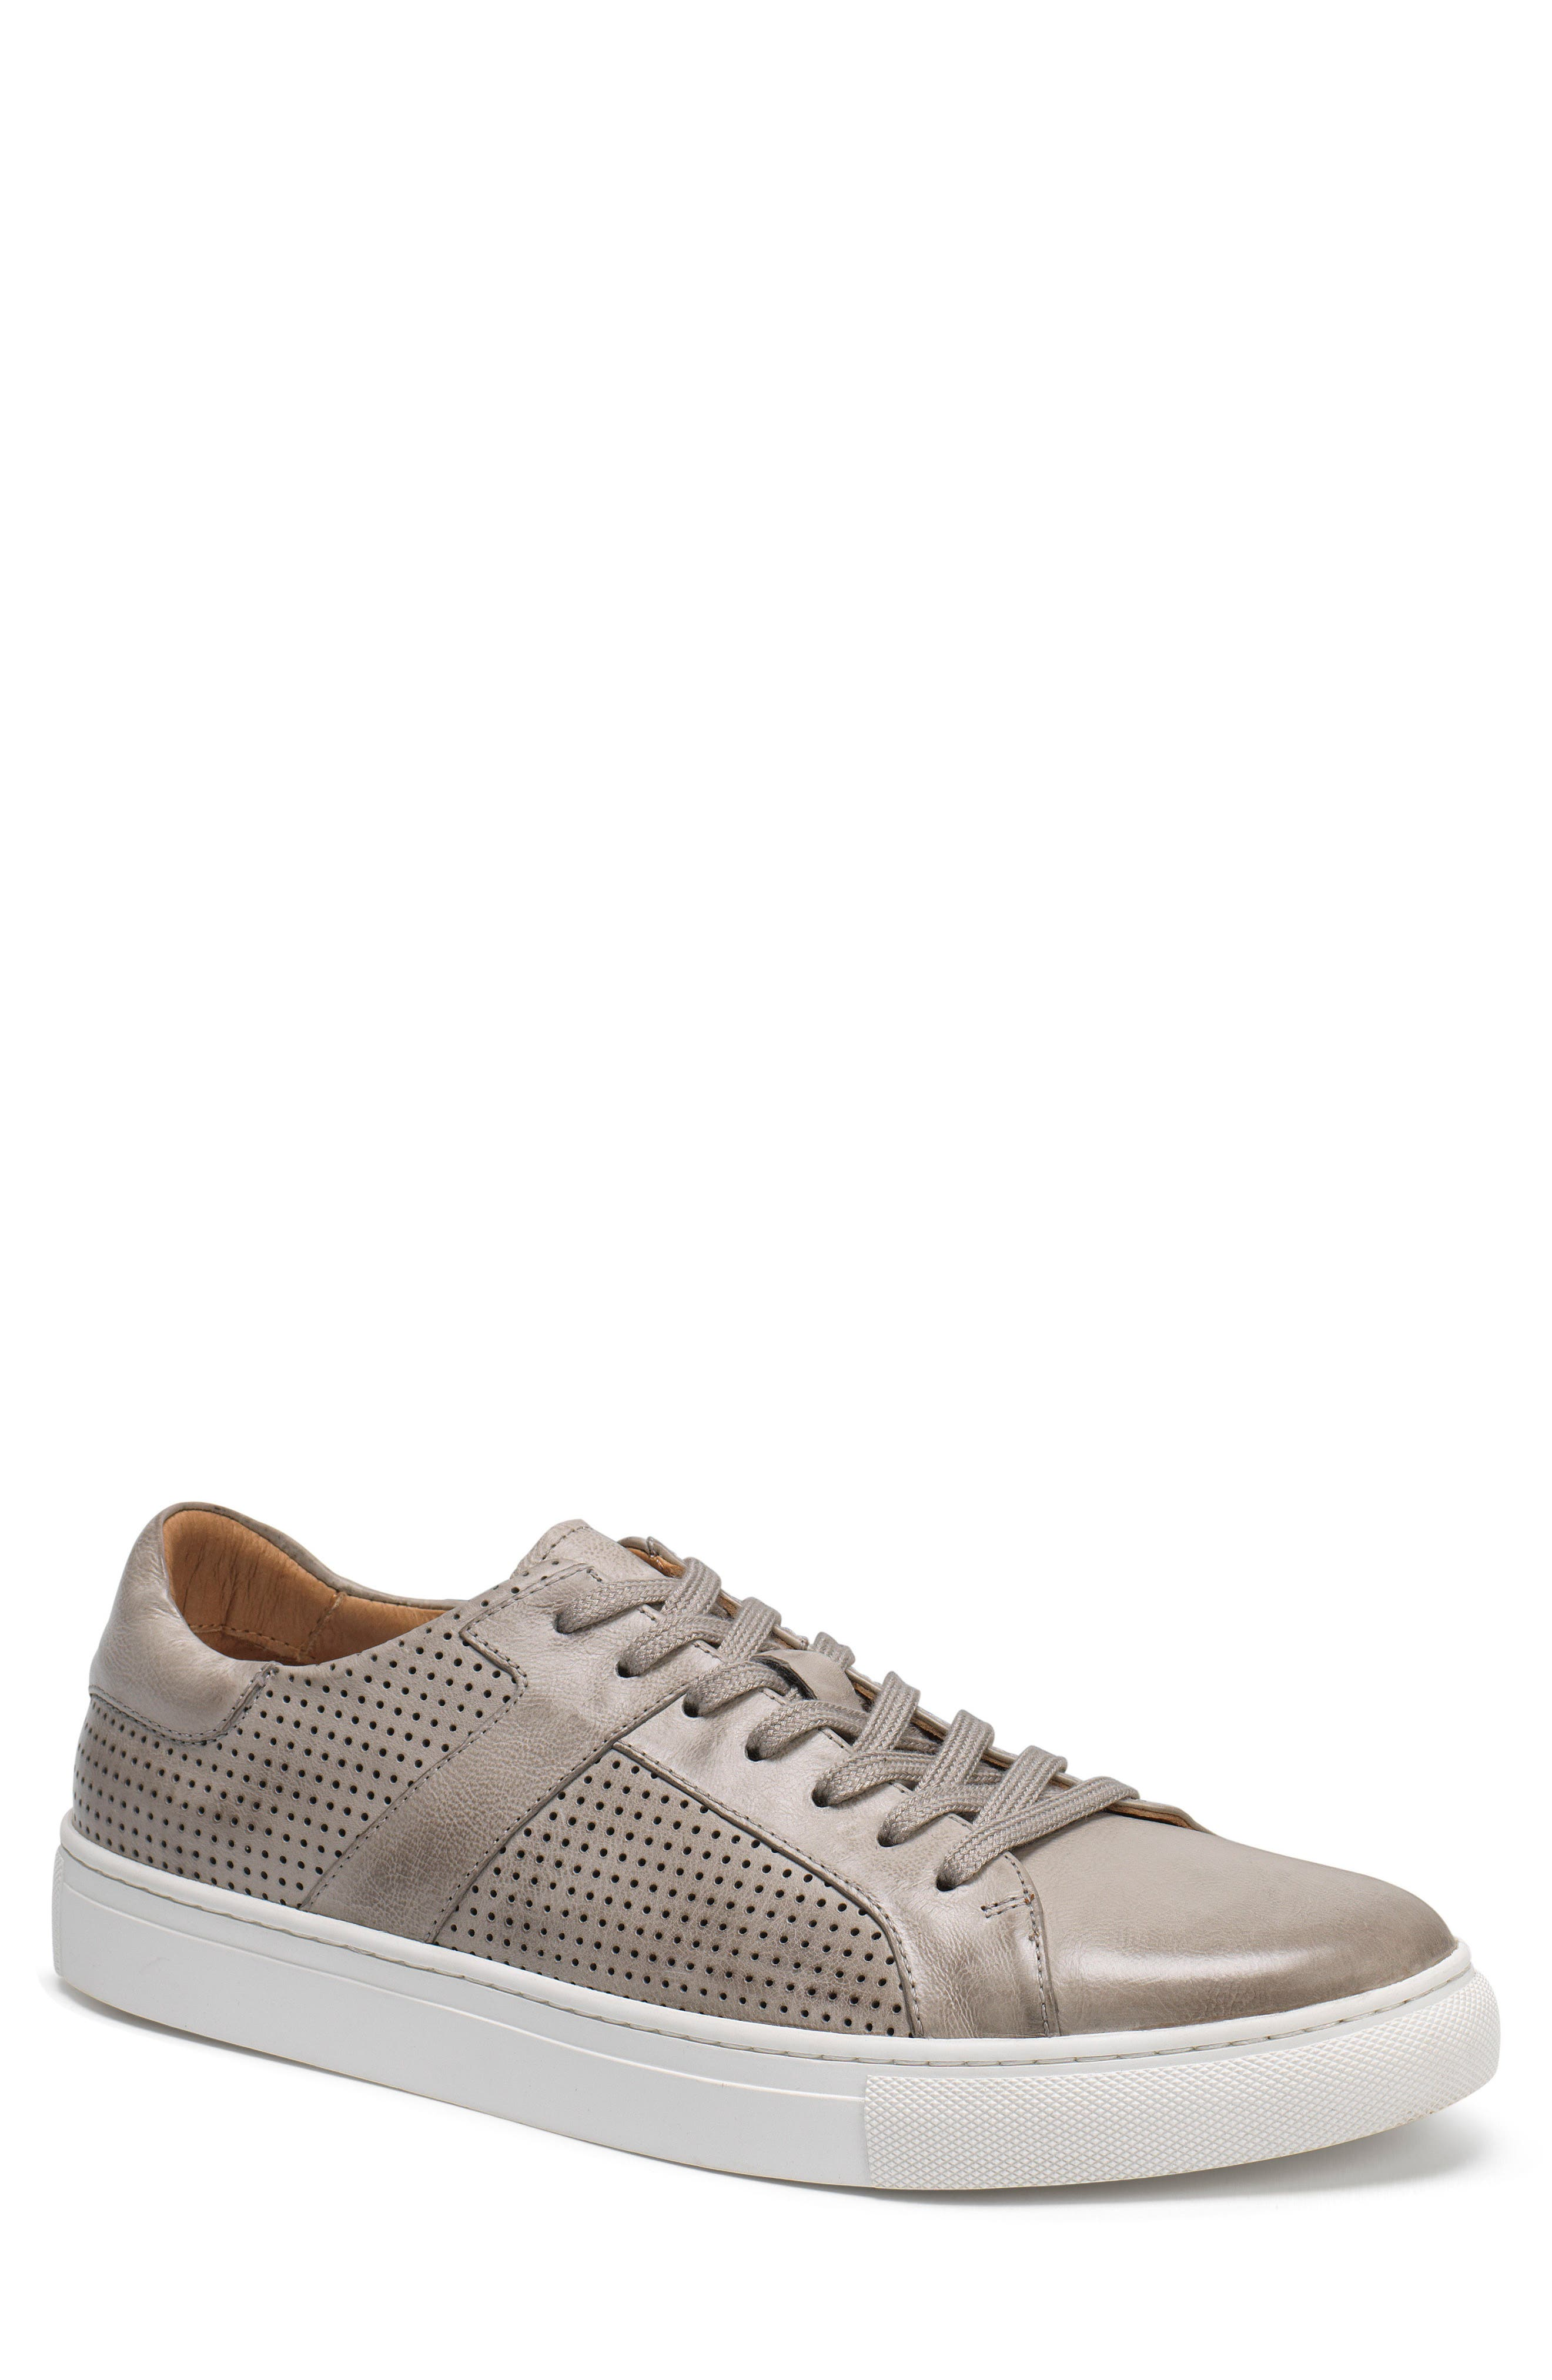 TRASK,                             Aaron Sneaker,                             Main thumbnail 1, color,                             LIGHT GREY LEATHER